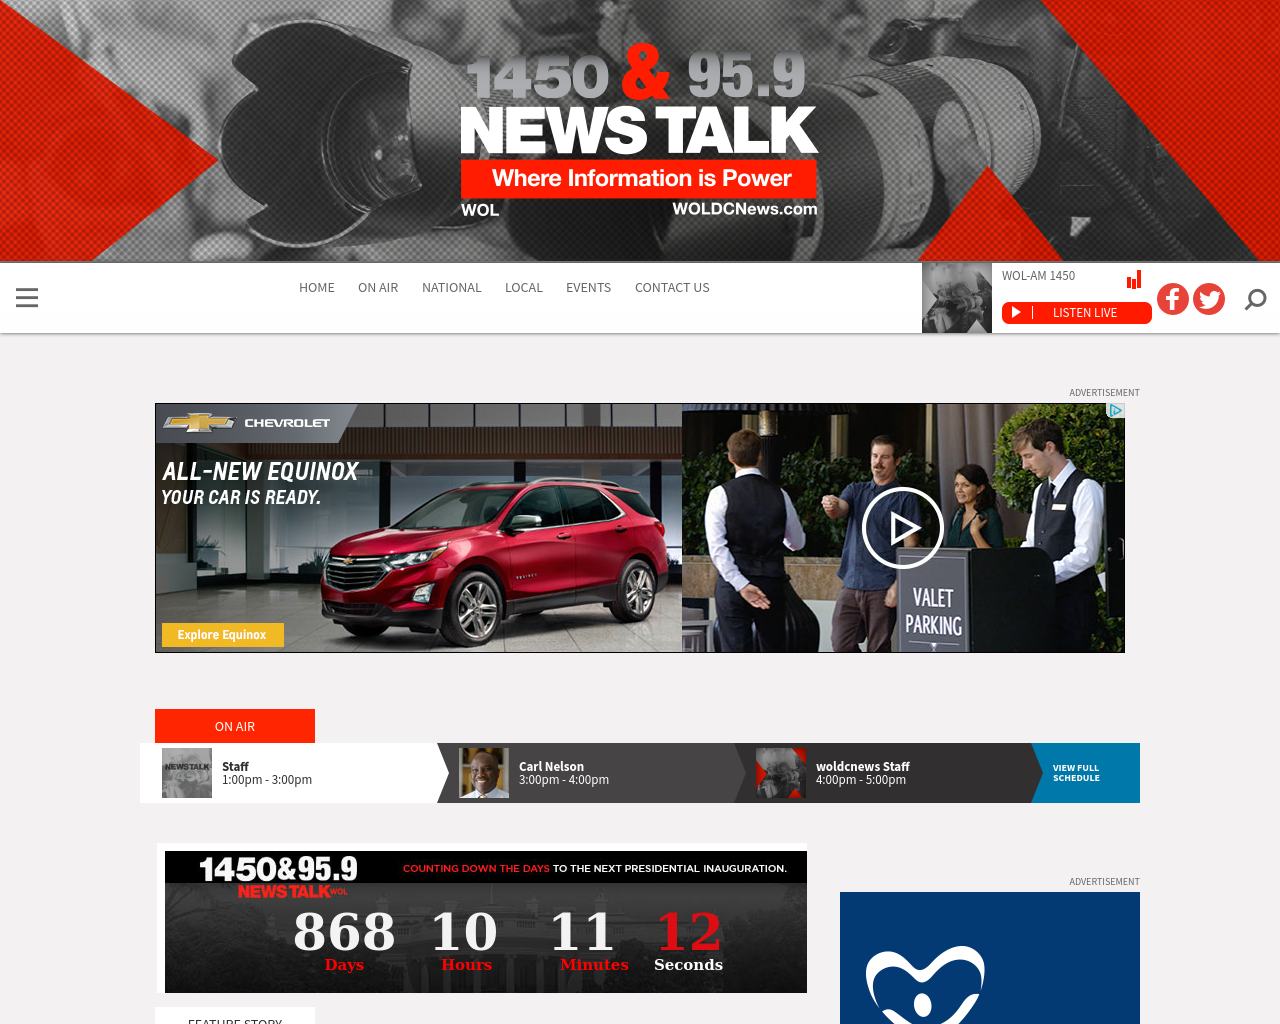 News-Talk-1450-Advertising-Reviews-Pricing